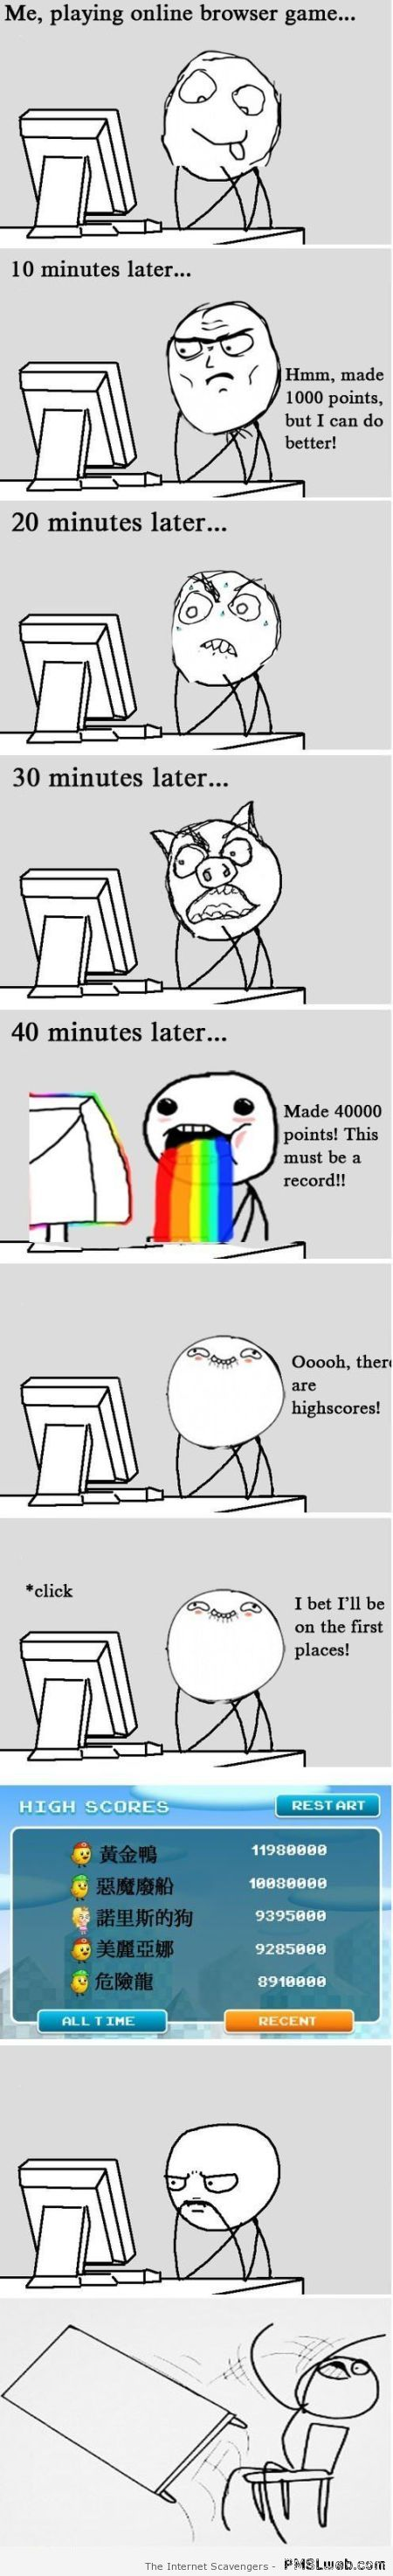 High scores meme  - Funny Hump day at PMSLweb.com